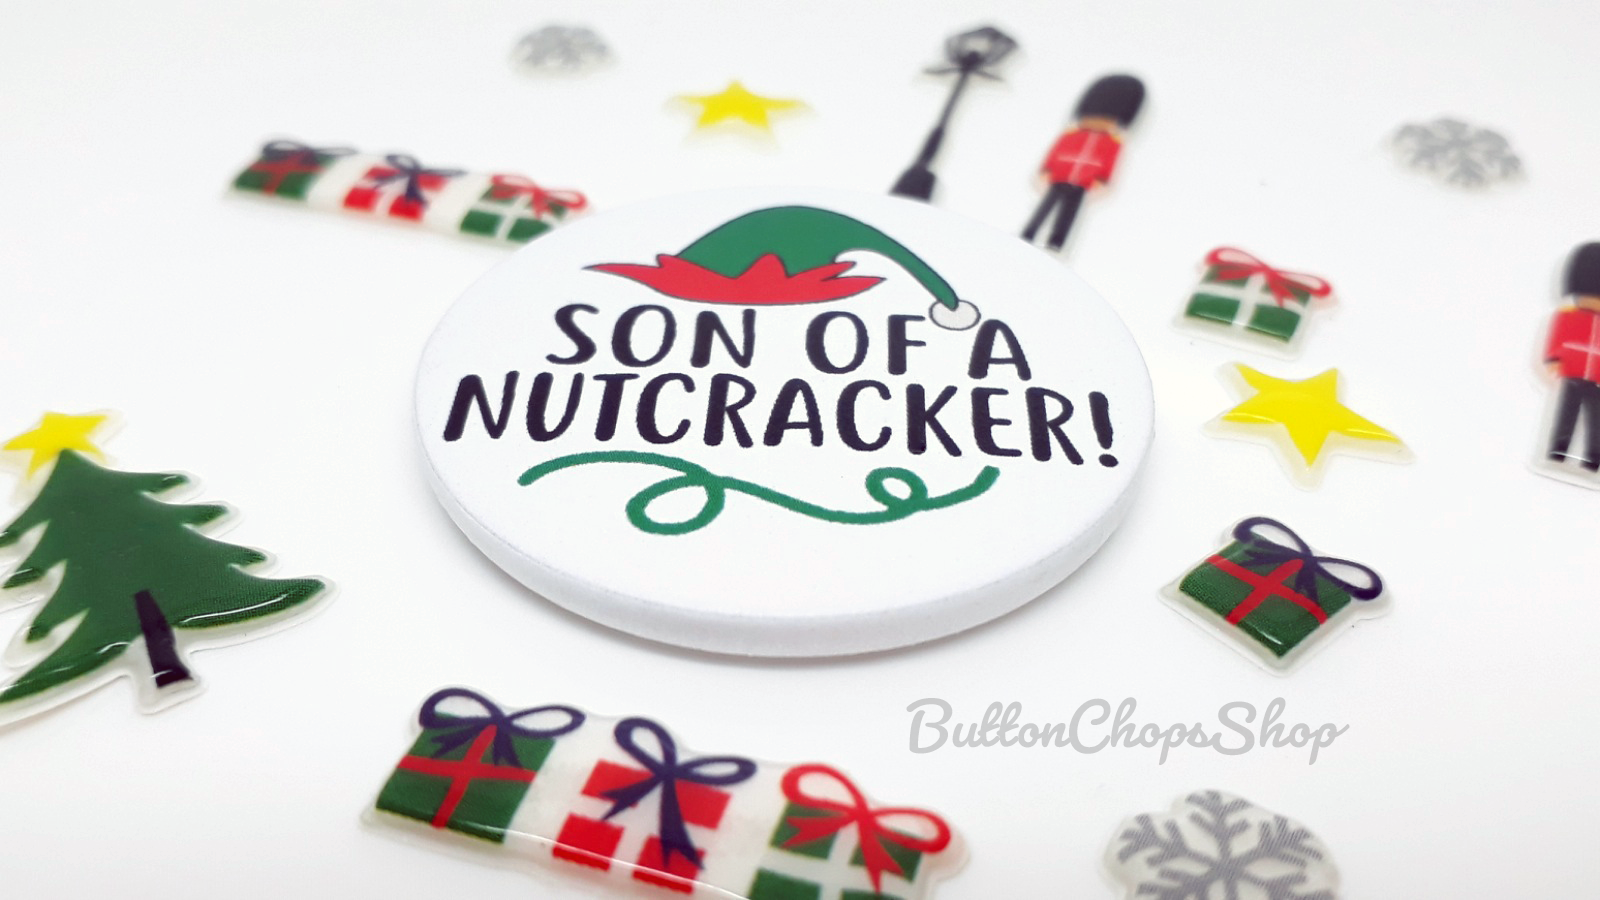 Son of a nutcracker close up ps